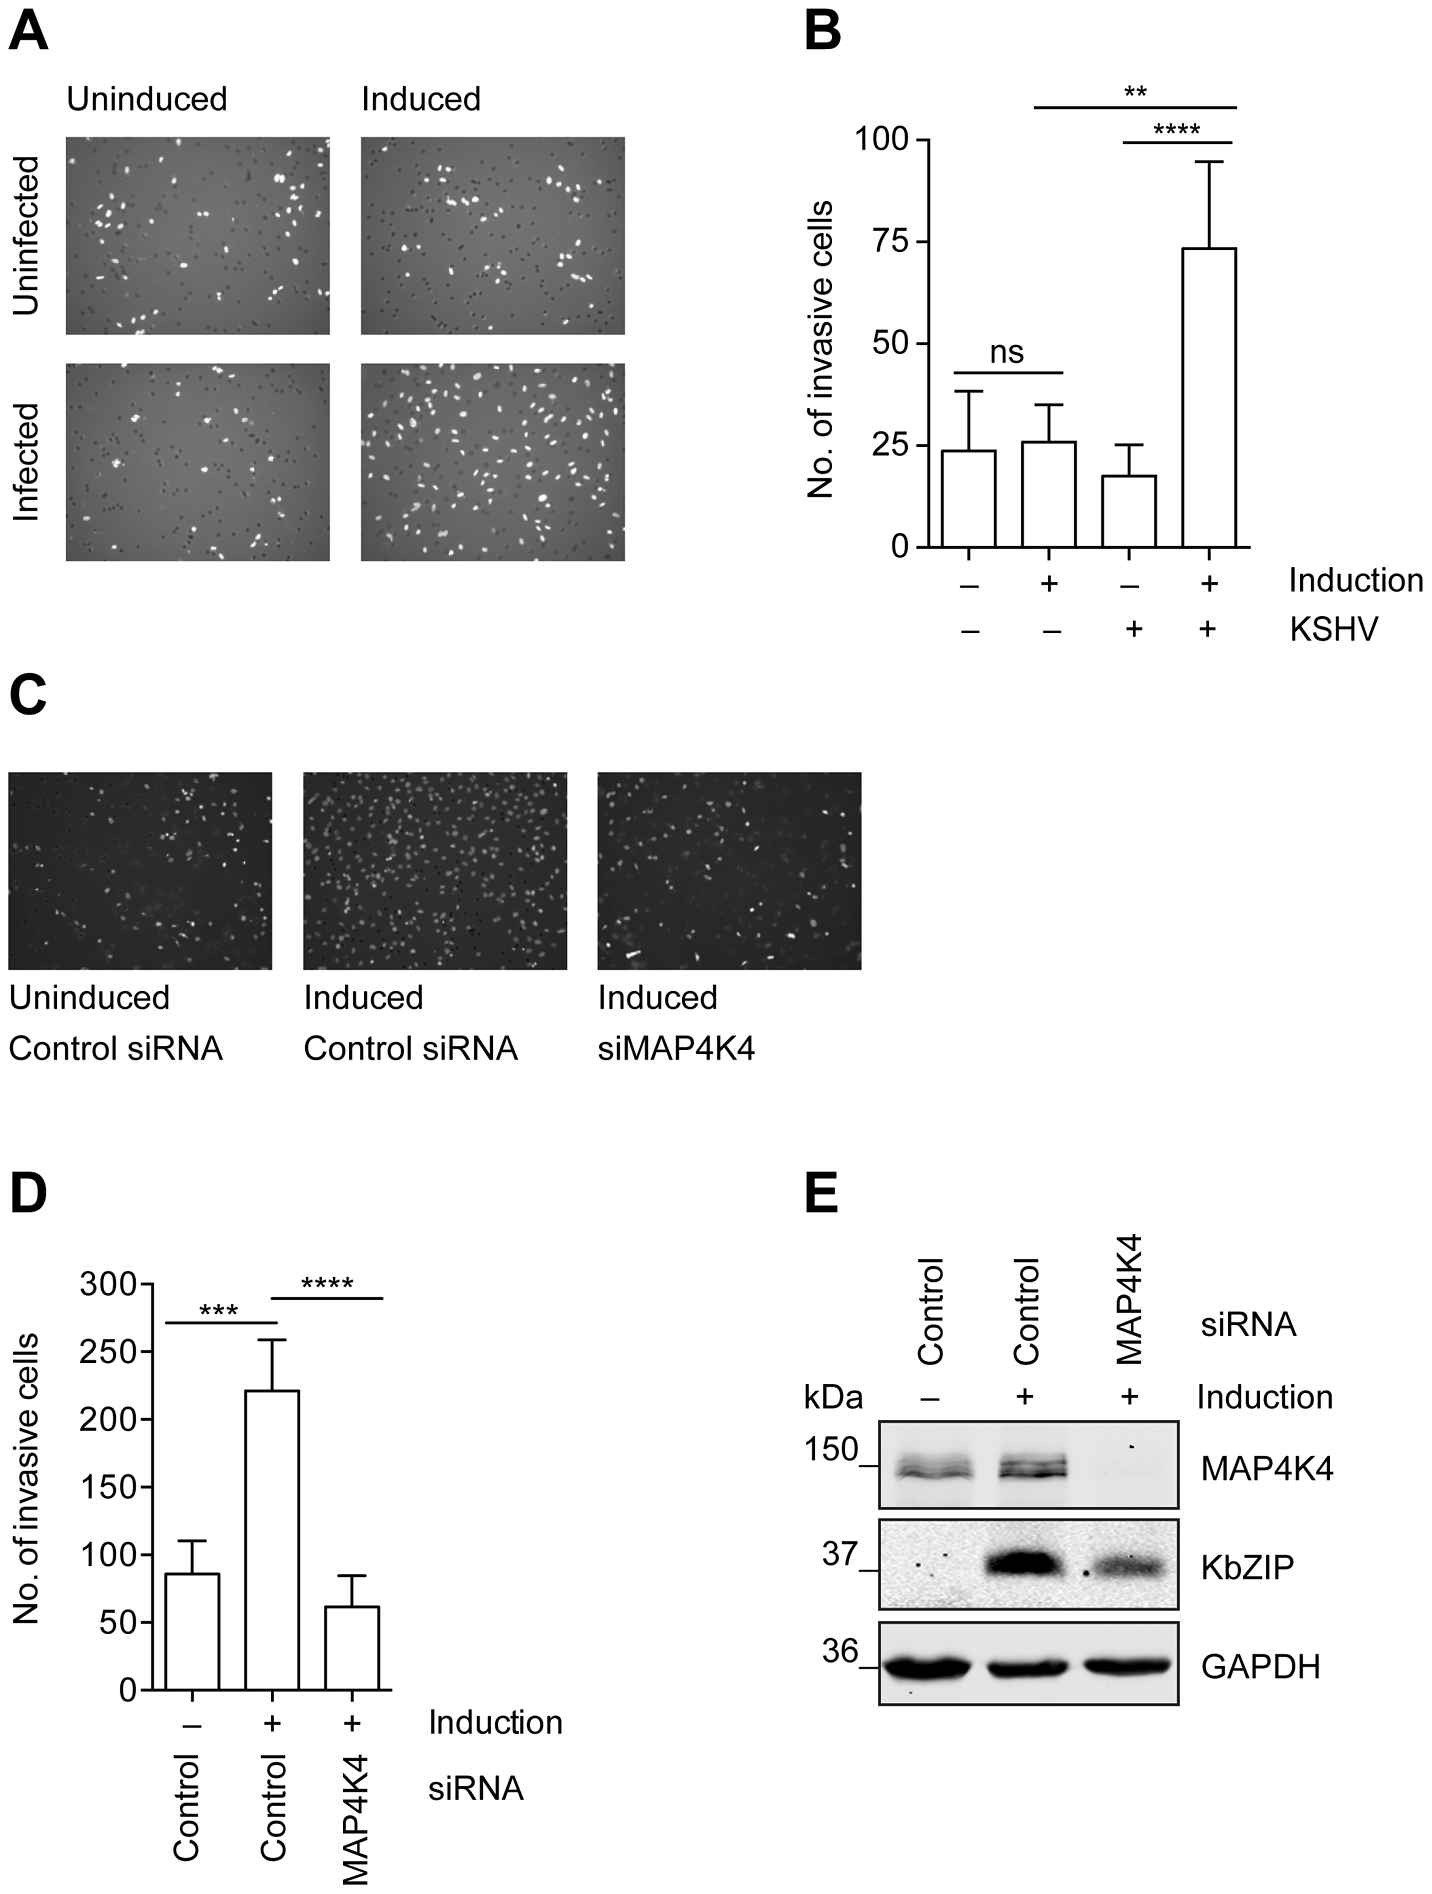 MAP4K4 is required for the increased invasiveness of KSHV-infected endothelial cells.